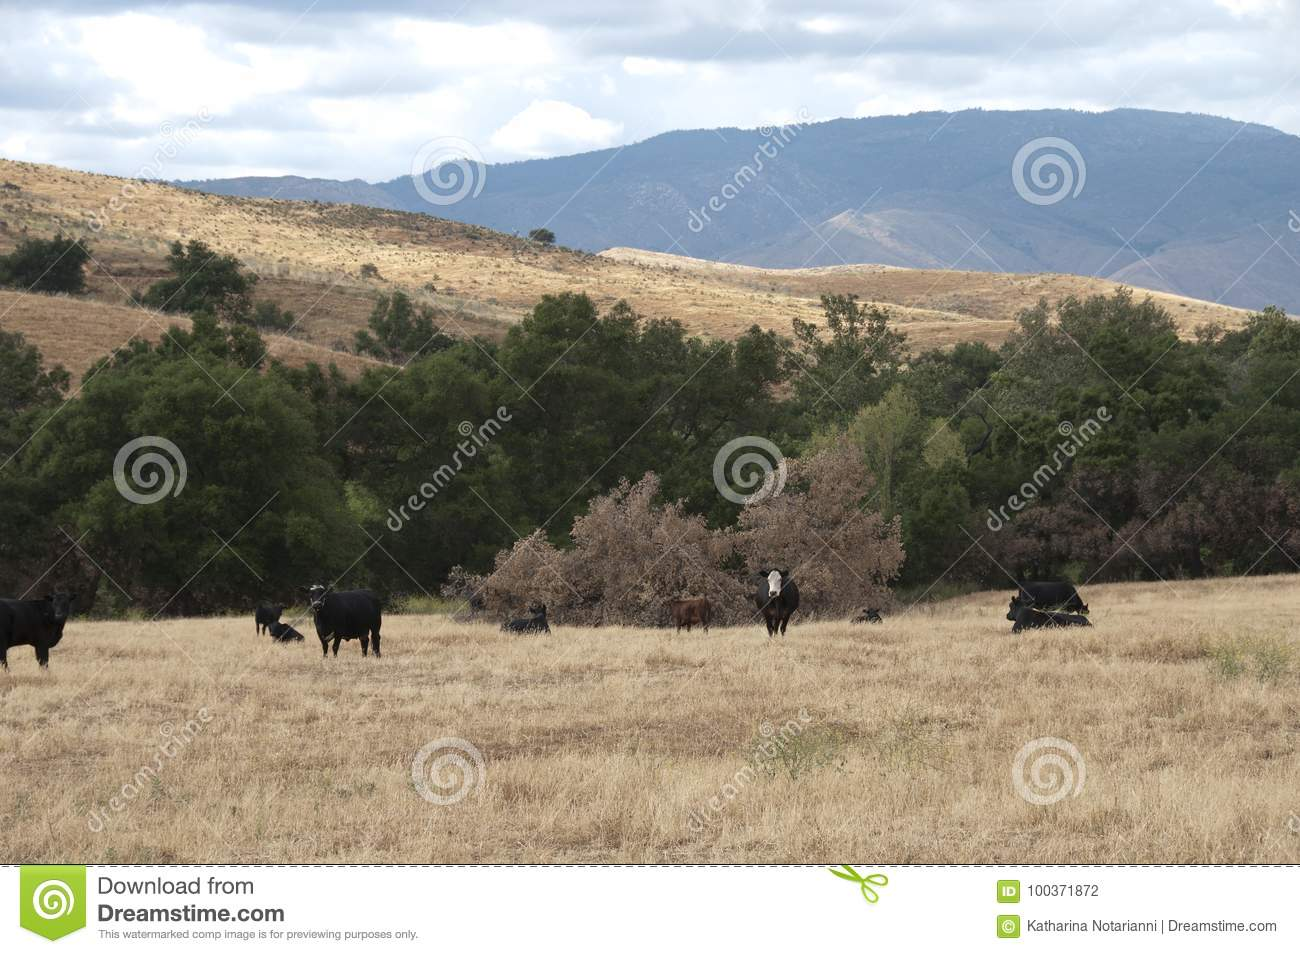 Black Baldy and Black Angus Cattle in a field